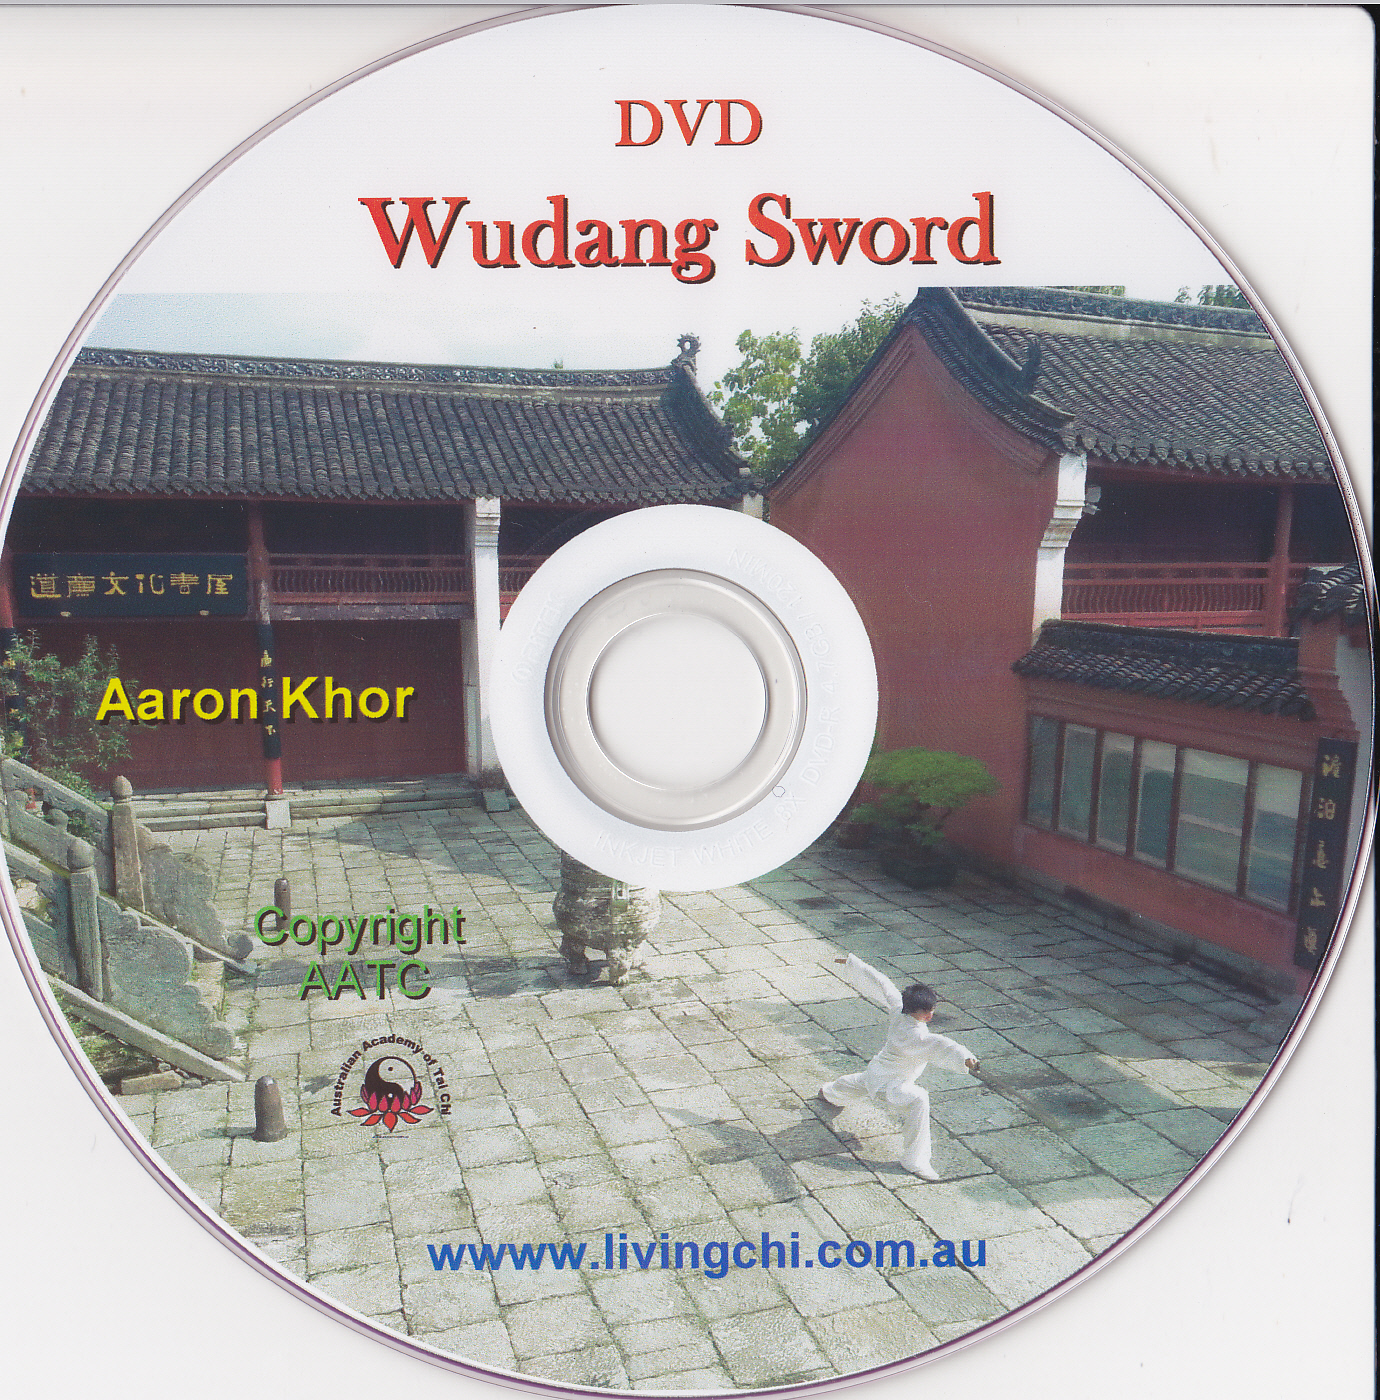 Wudang Sword DVD cover